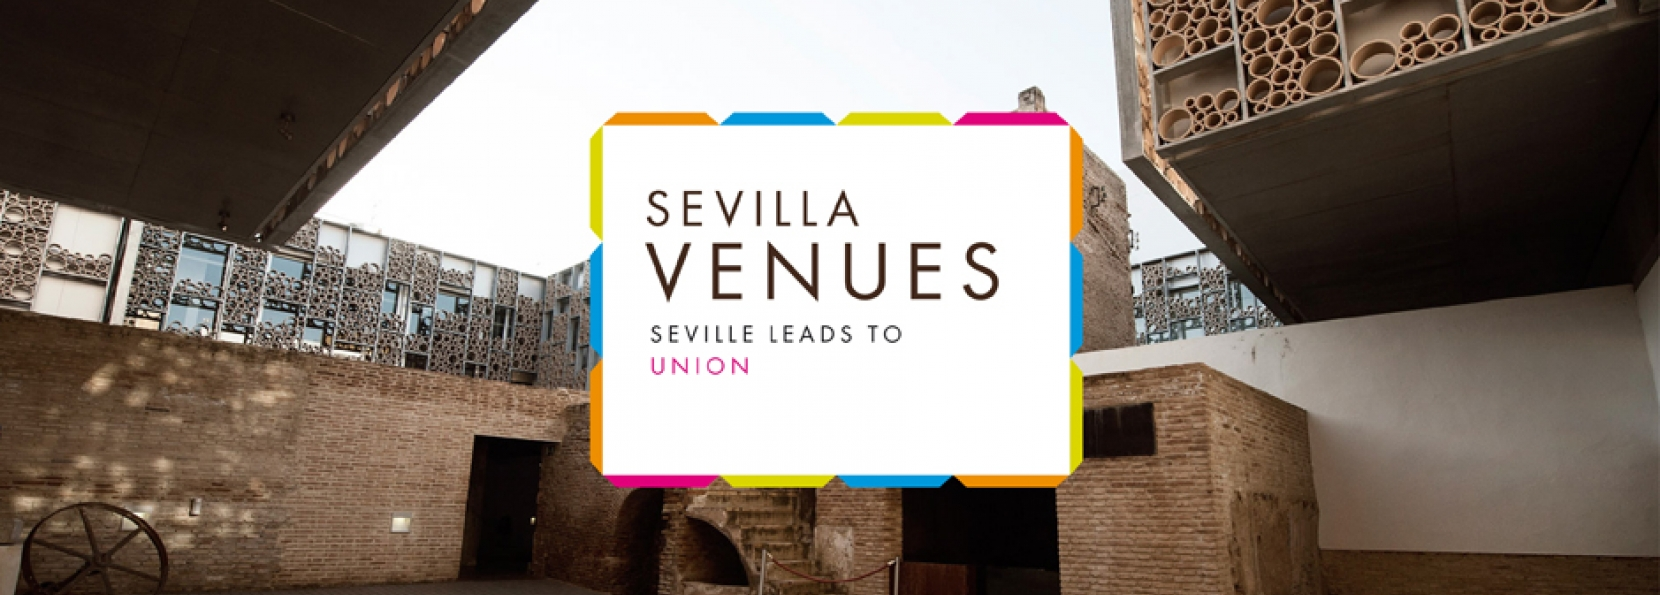 Seville leads to union